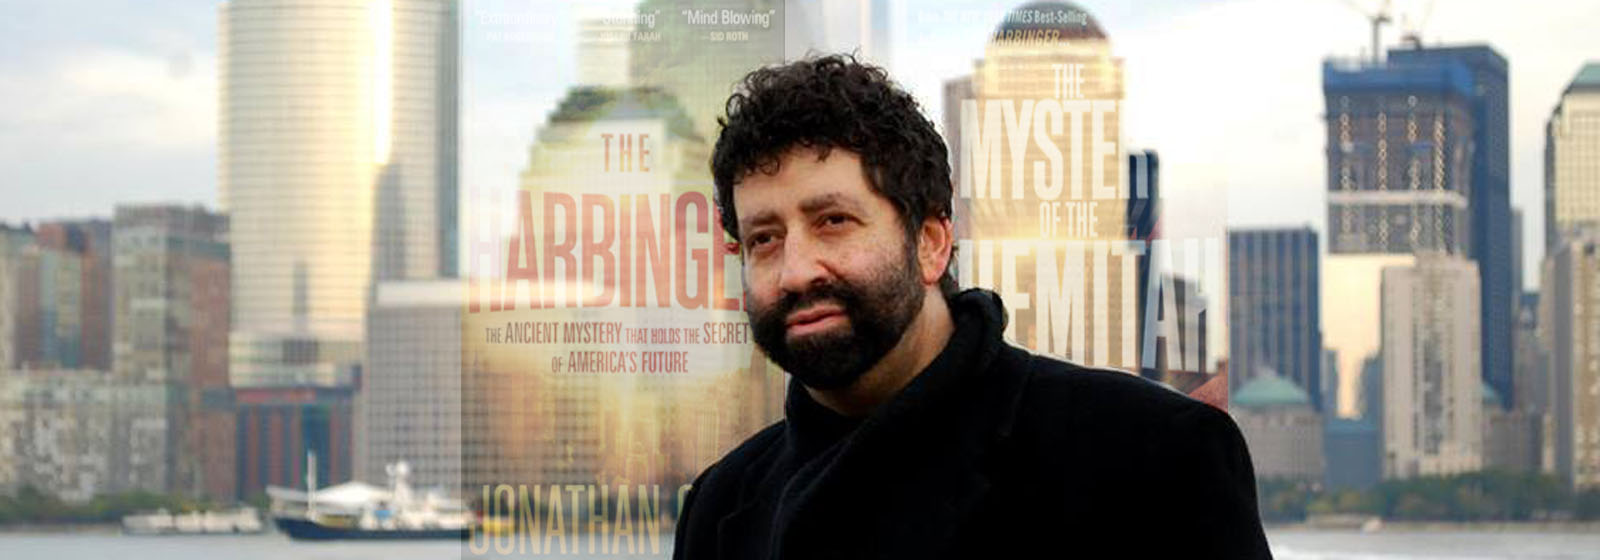 Jonathan-Cahn-CROPPED copy